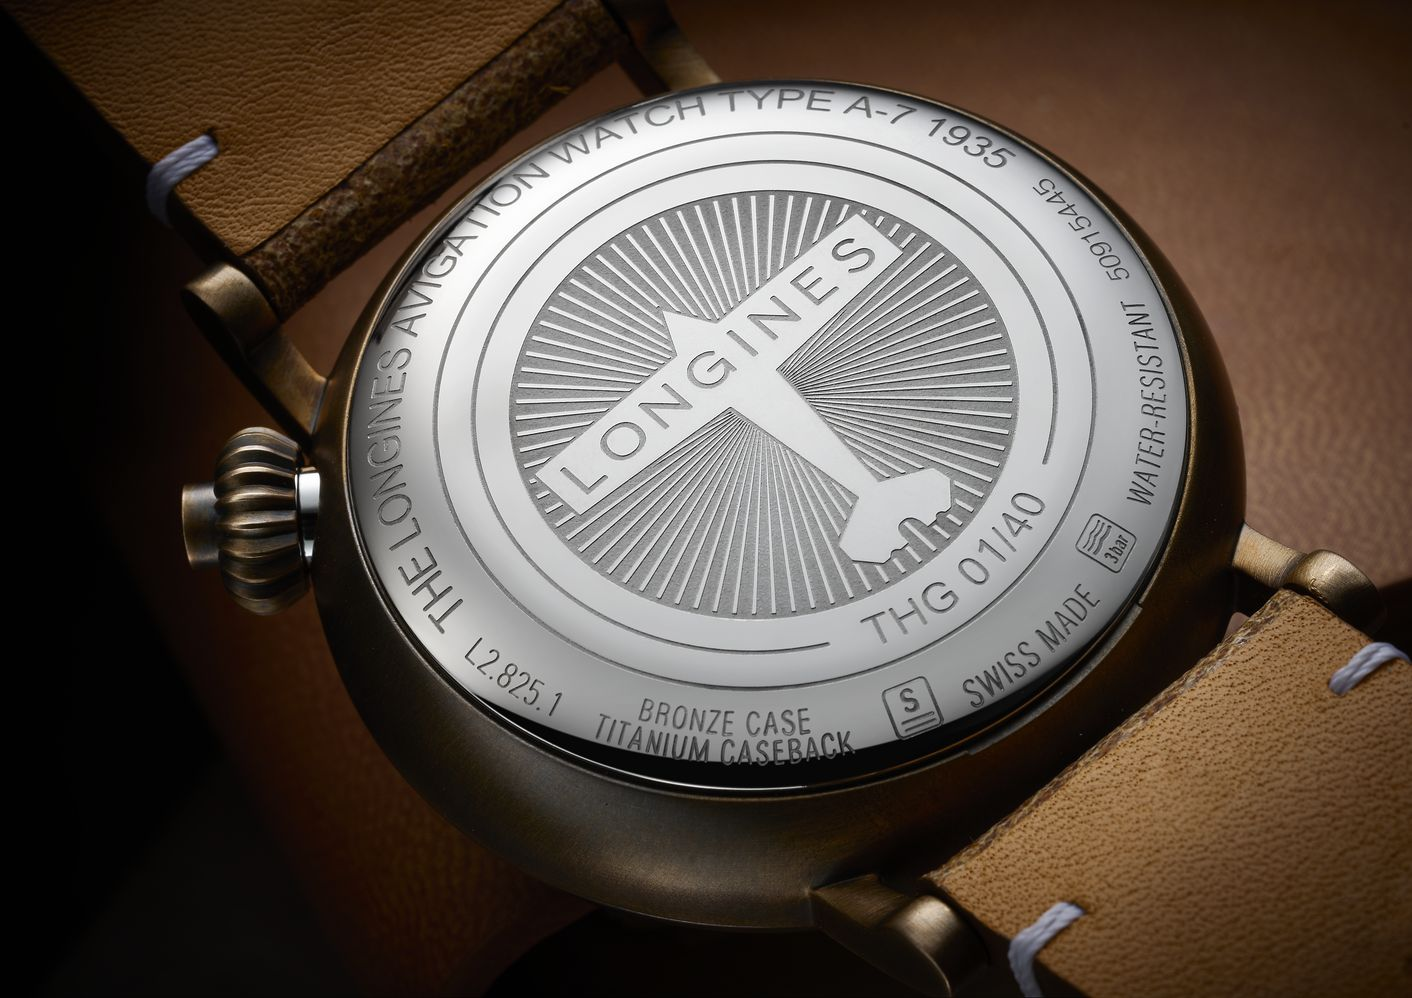 The Avigation watch type a-7 1935